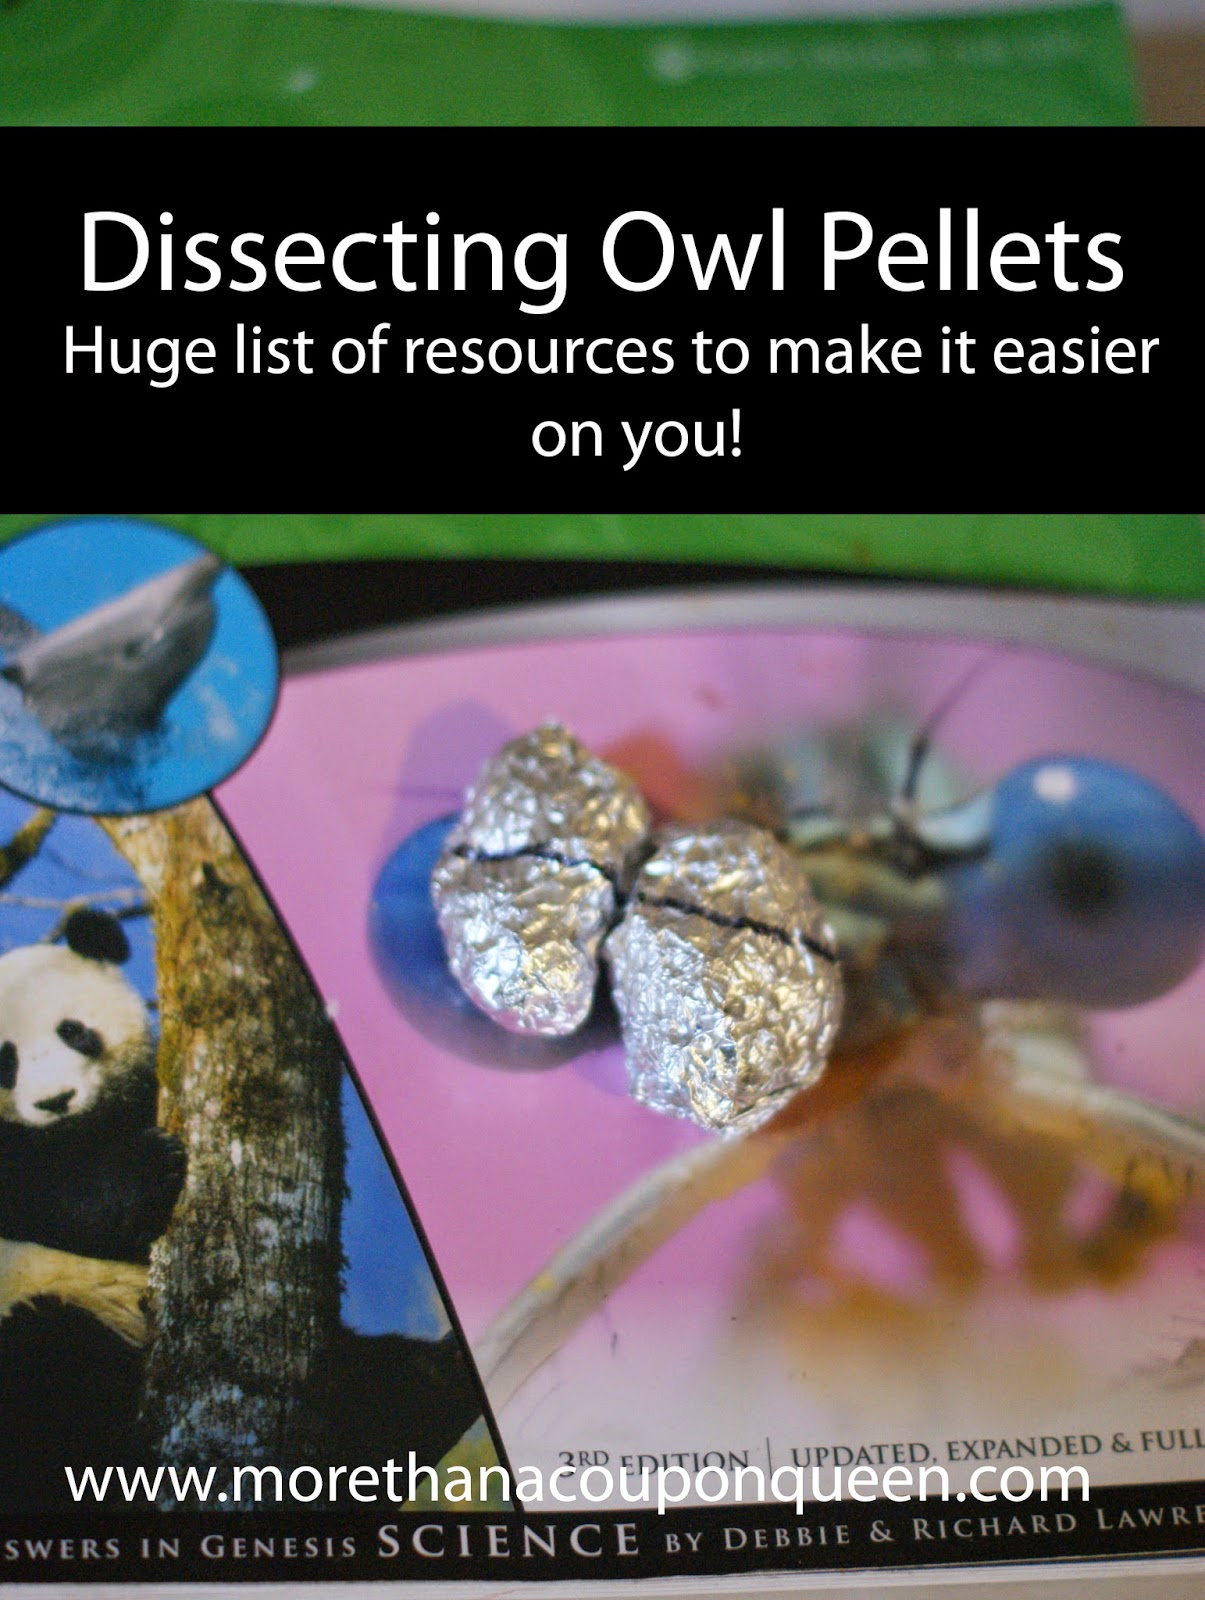 Dissecting Owl Pellets - Huge List of resources to make it easier on you - Geeky Educational Link Up Week 38